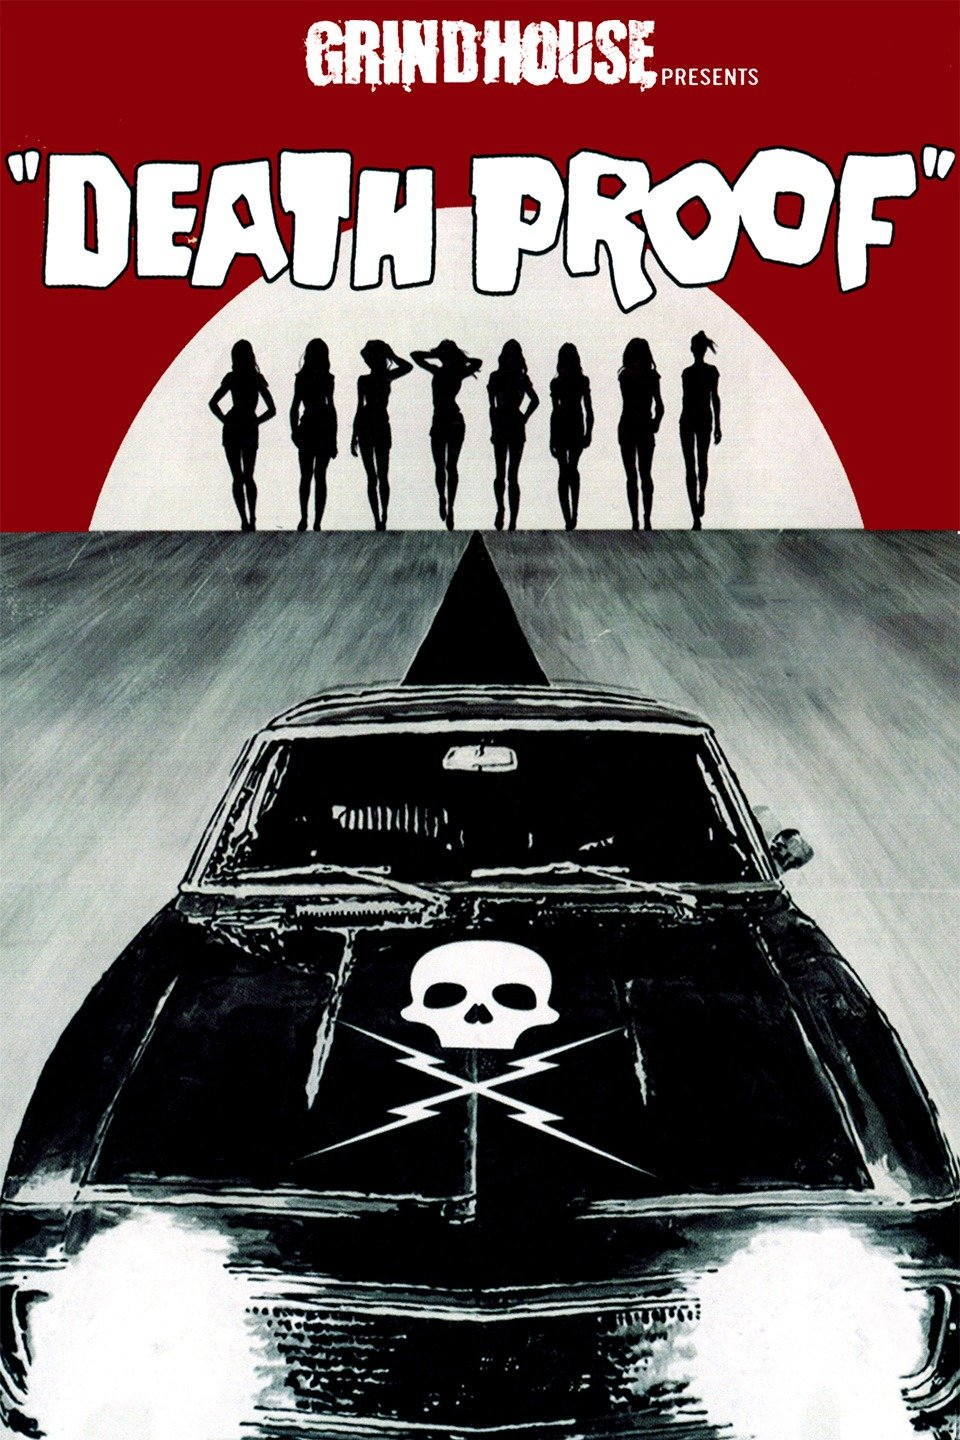 Death Proof (2007) - Directed by: Quentin TarantinoStarring: Kurt Russell, Zoe Bell, Rosario DawsonRated: R for Strong Graphic Bloody Violence and Gore, Pervasive Language, Some Sexuality, Nudity and Drug UseRunning Time: 1h 53mTMM Score: 4 StarsSTRENGTHS: Cinematography, Nostalgia, Kurt Russell, ActionWEAKNESSES: Not Very Compelling